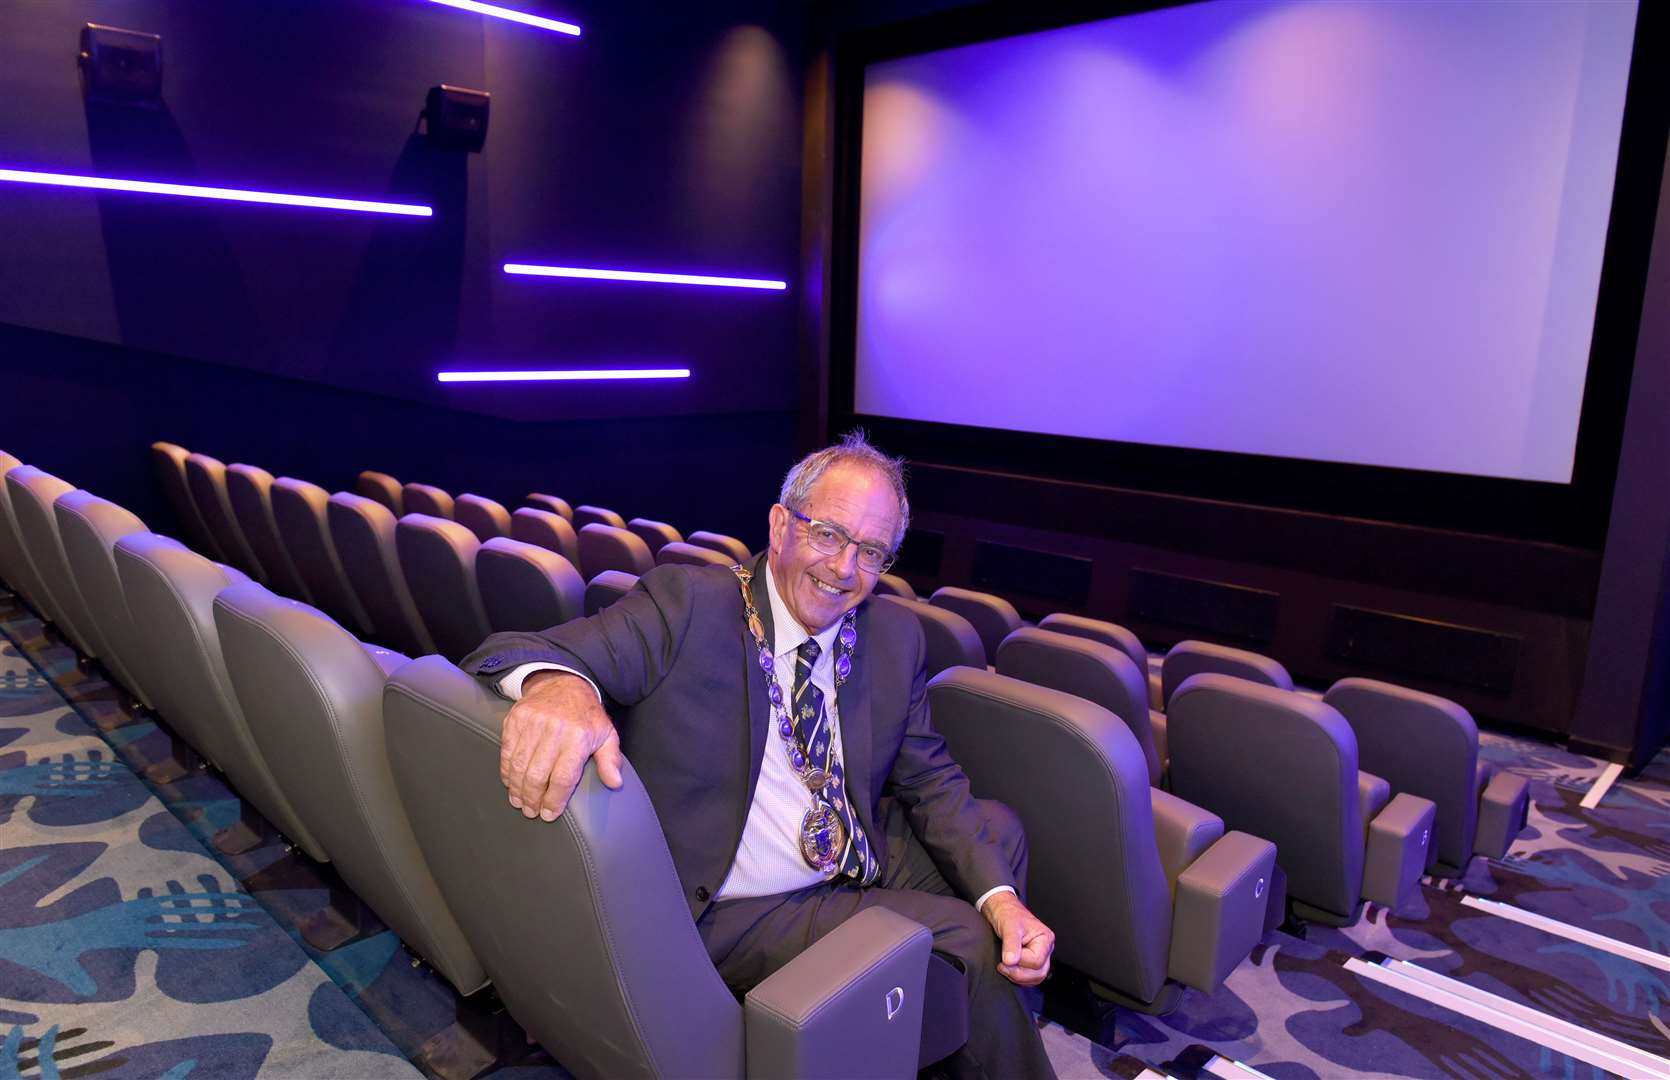 Official Opening of the two New Cinemas at The Alive Corn Exchange Tuesday Market Place King's Lynn, by Borough Mayor Cllr Geoff Hipperson...Borough Mayor Cllr Geoff Hipperson is pictured in Cinema No 1 after the official opening ceremony.. (42350268)